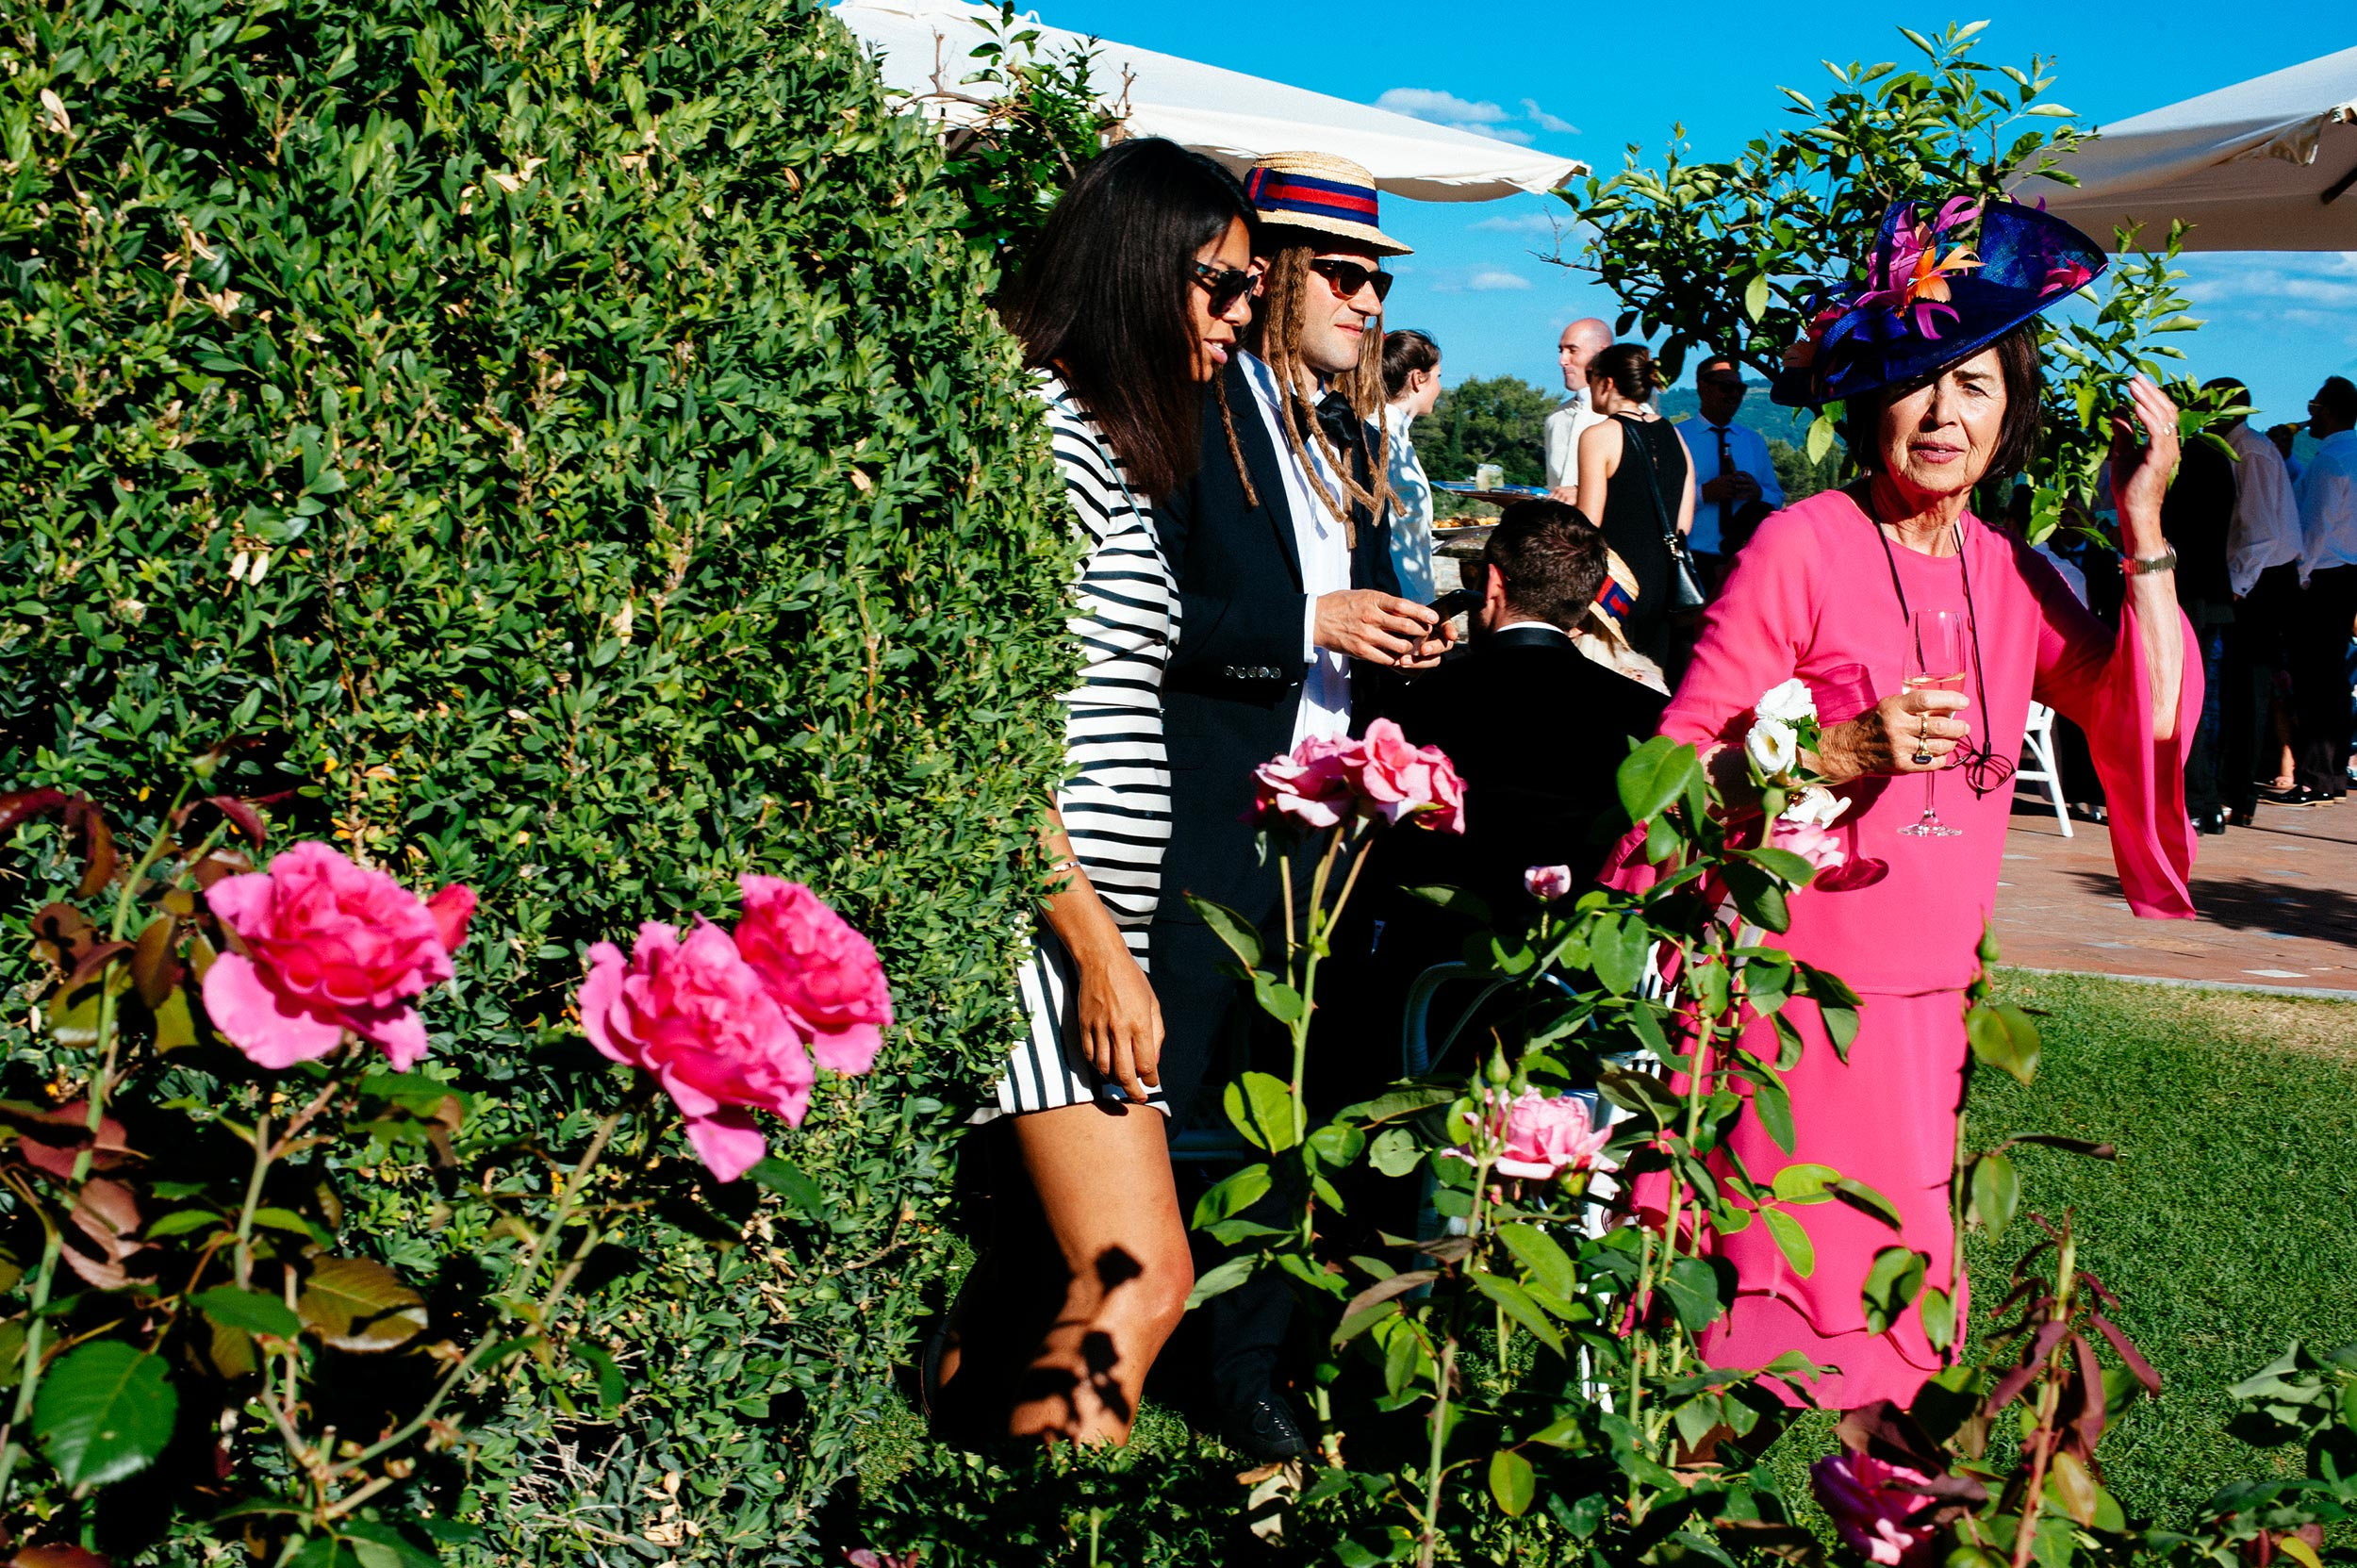 lady-dressed-in-magenta-next-to-magenta-roses-at-reception-documentary-street-wedding-photography-by-Alessandro-Avenali.jpg